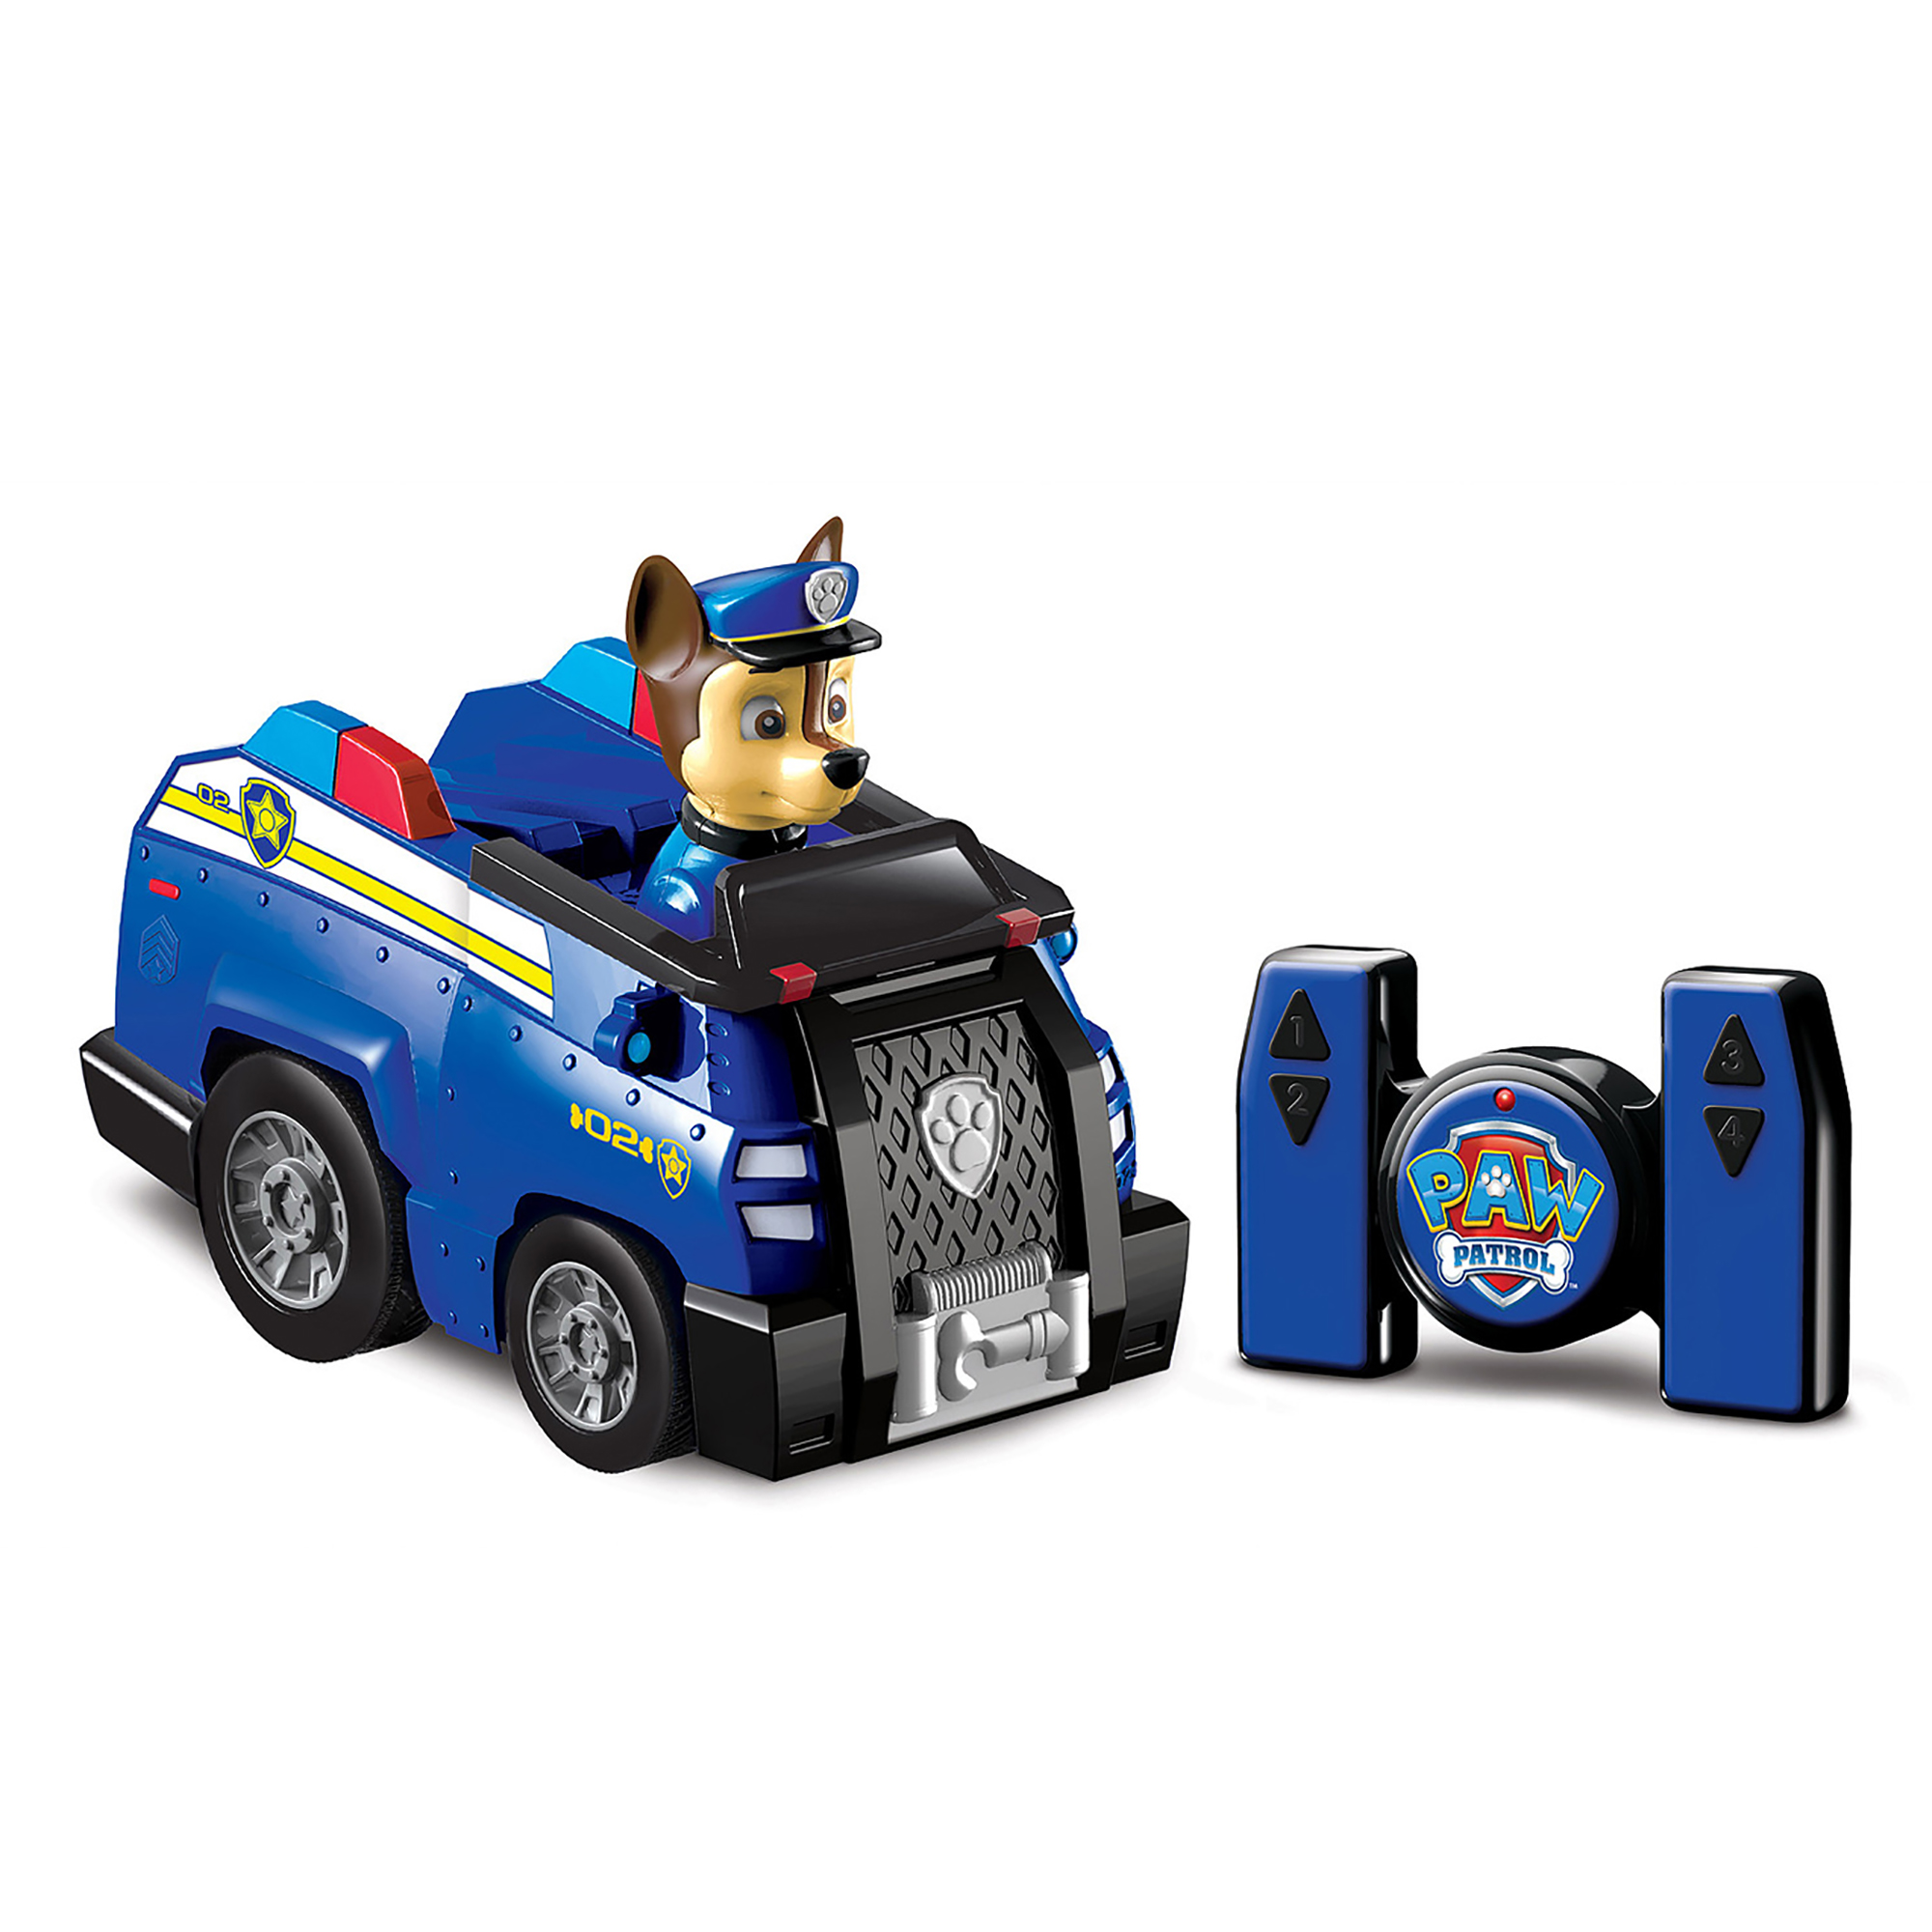 Jamn Products - Paw Patrol My First Preschool Remote Control, Chase